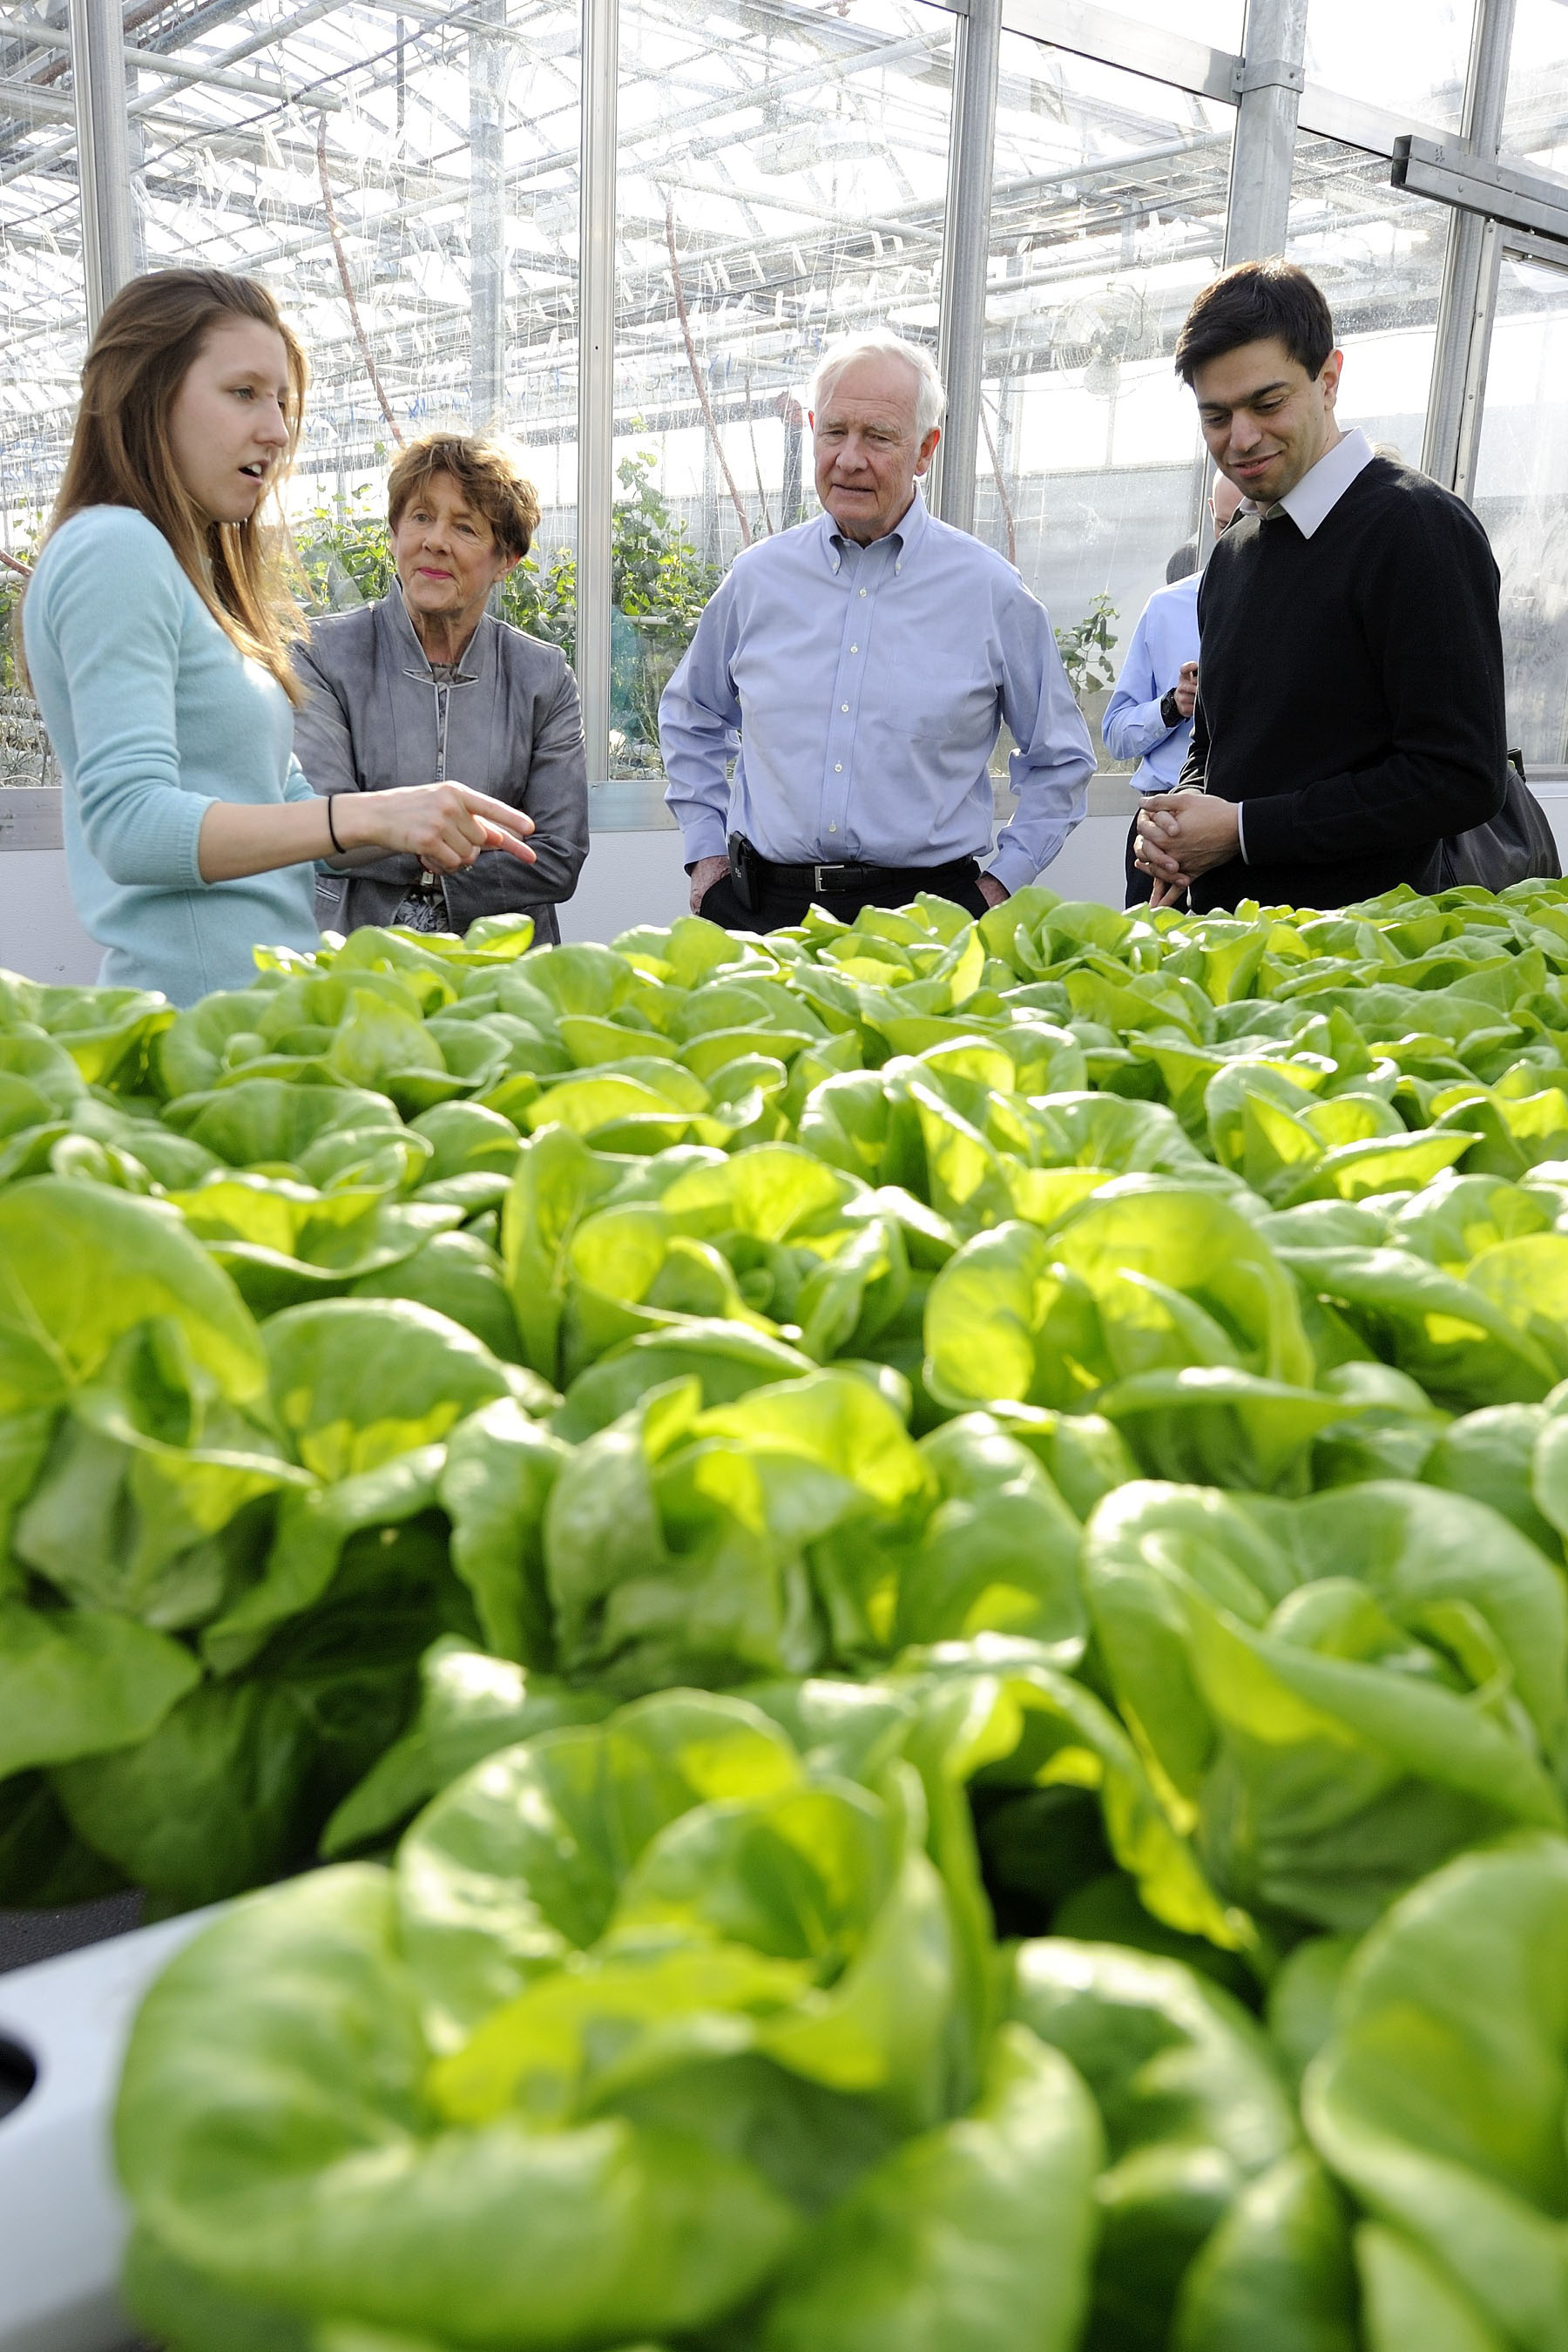 Later that afternoon, Their Excellencies made their way to Lufa Farms, a Quebec-based urban farming enterprise that grows fresh vegetables in greenhouses located in cities and specializes in new agricultural technologies in urban zones.